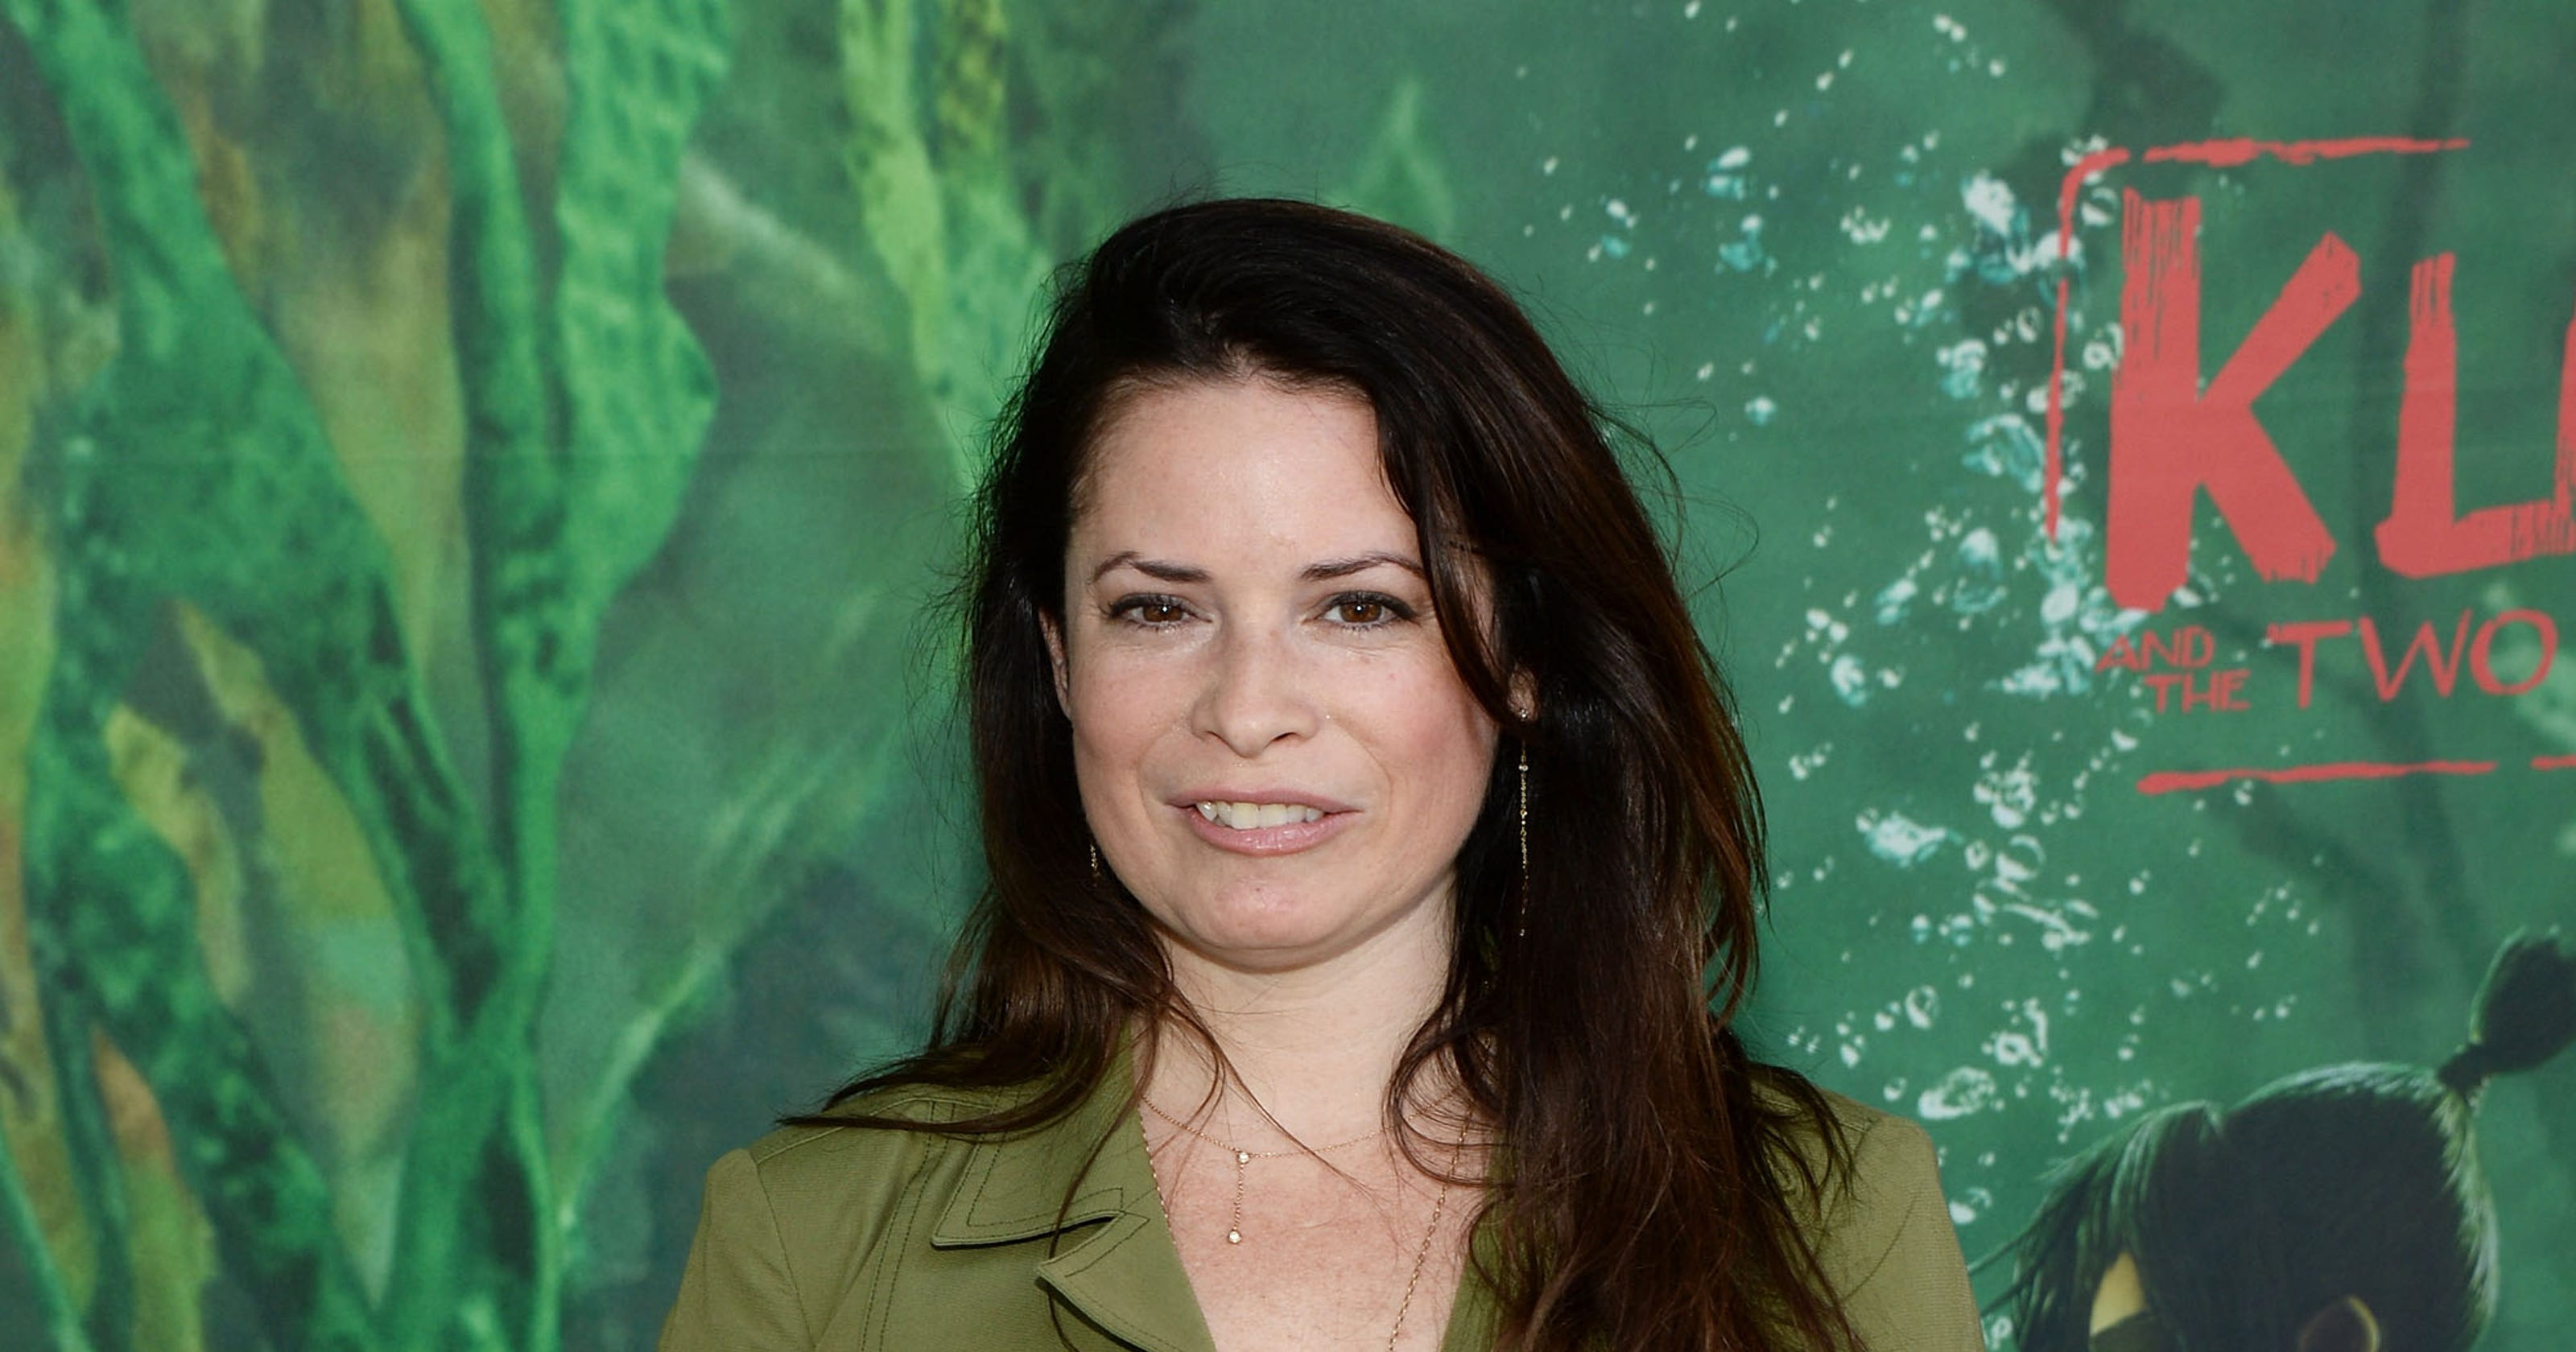 Charmed Star Holly Marie Combs Dismisses Cw Reboot Plan